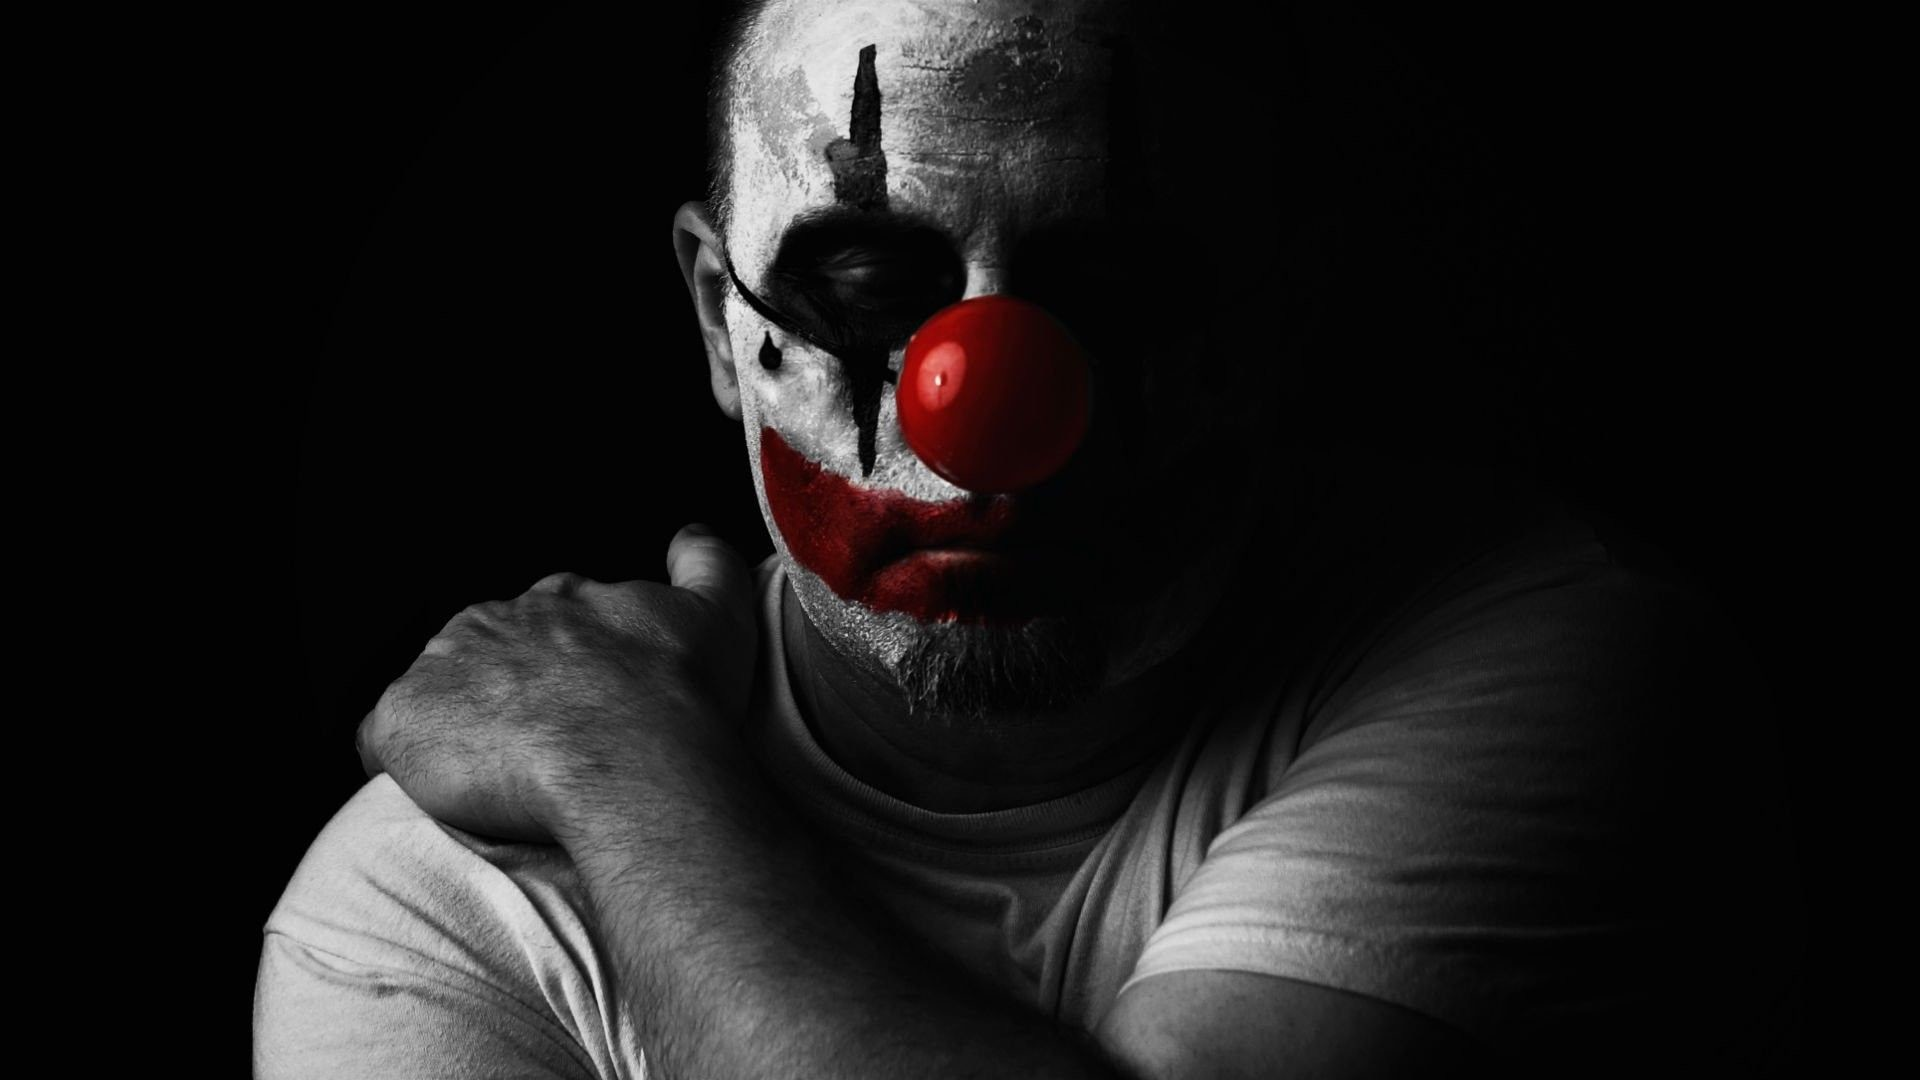 Res: 1920x1080, Scary Joker Wallpaper (54+ images)